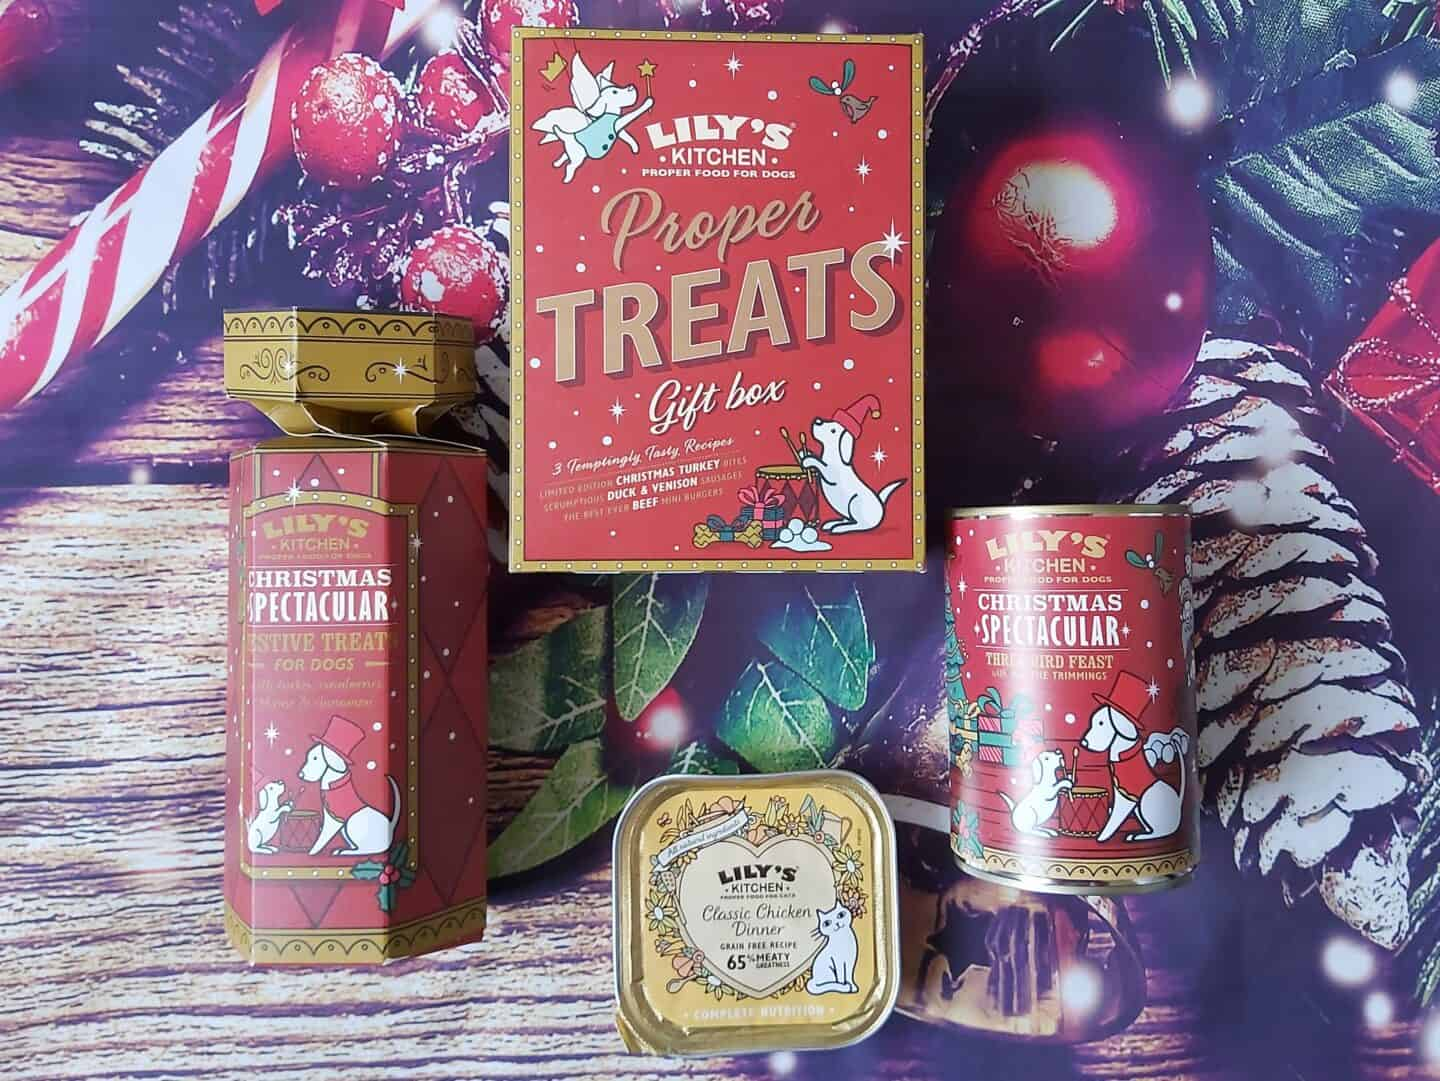 Lily's kitchen treats for dogs and cats in festive packaging against a Christmassy background